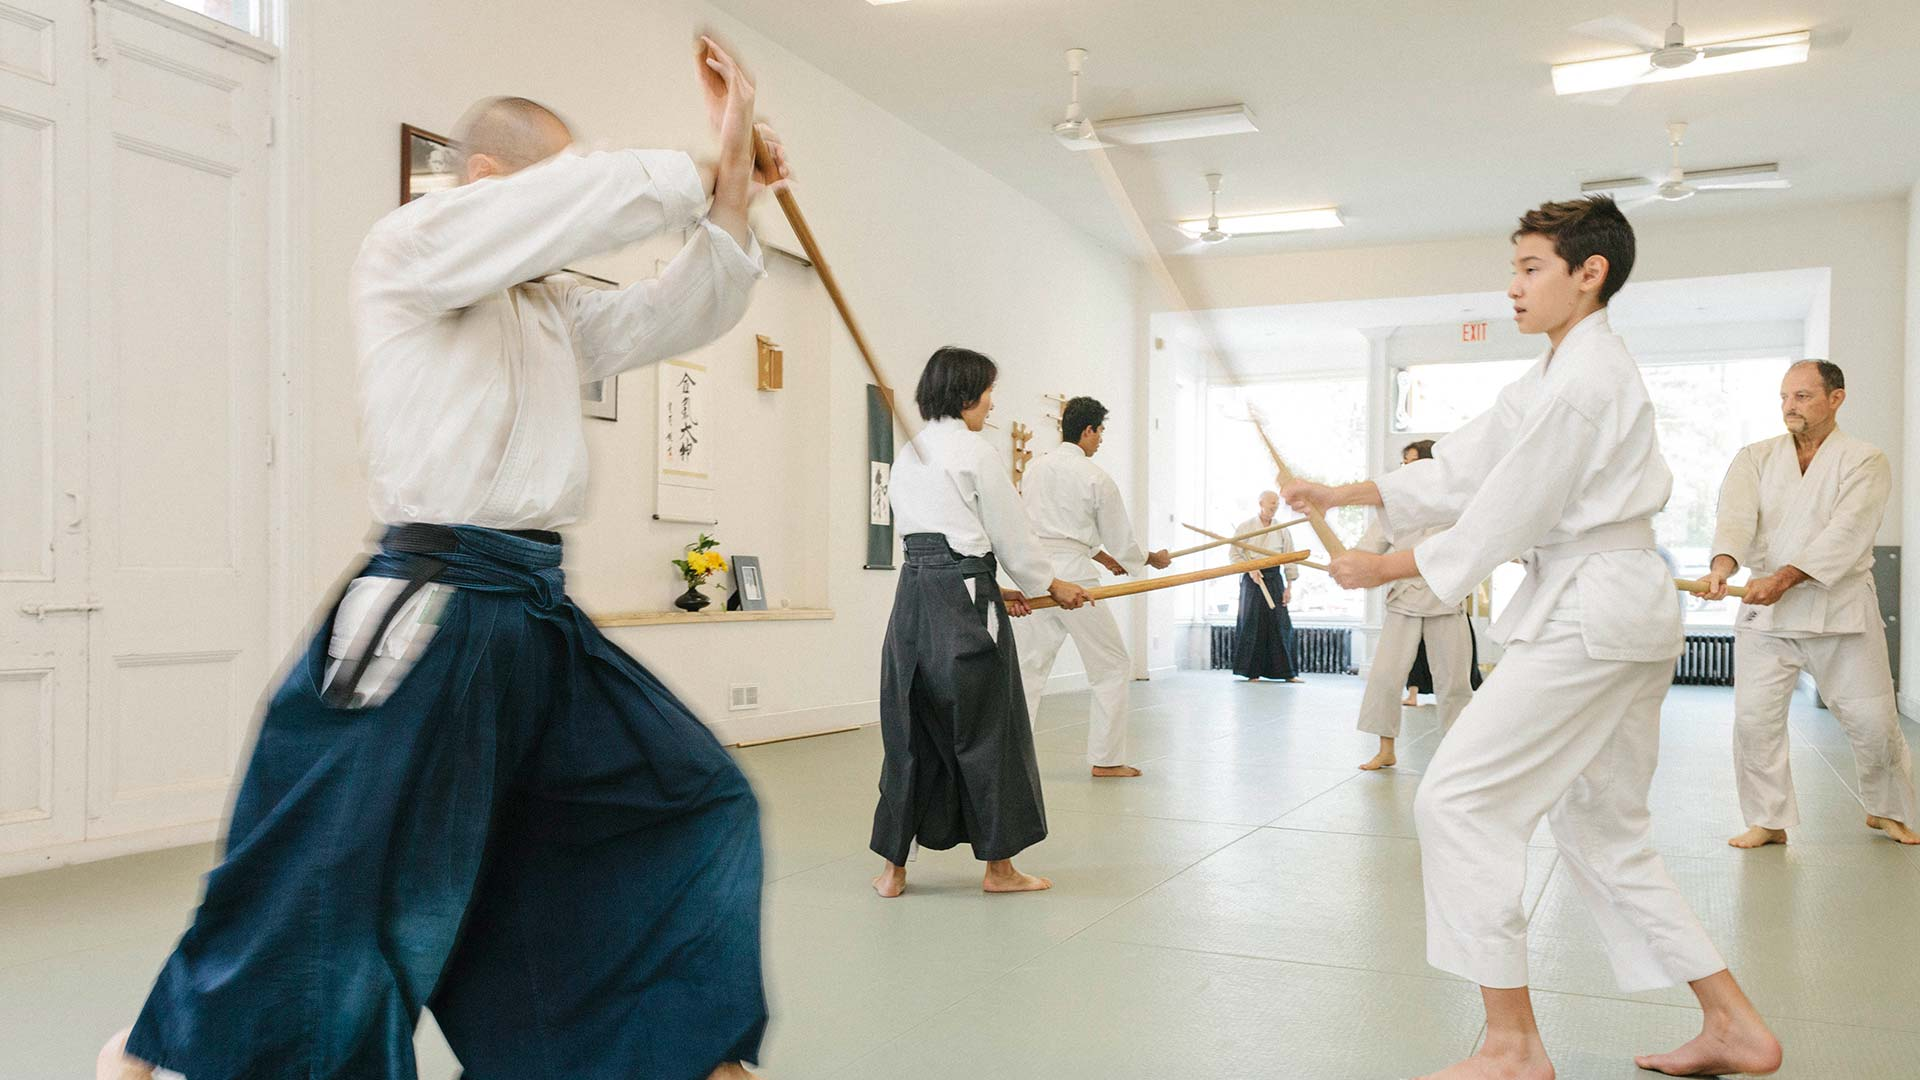 aikido weapons martial arts classes downtown toronto